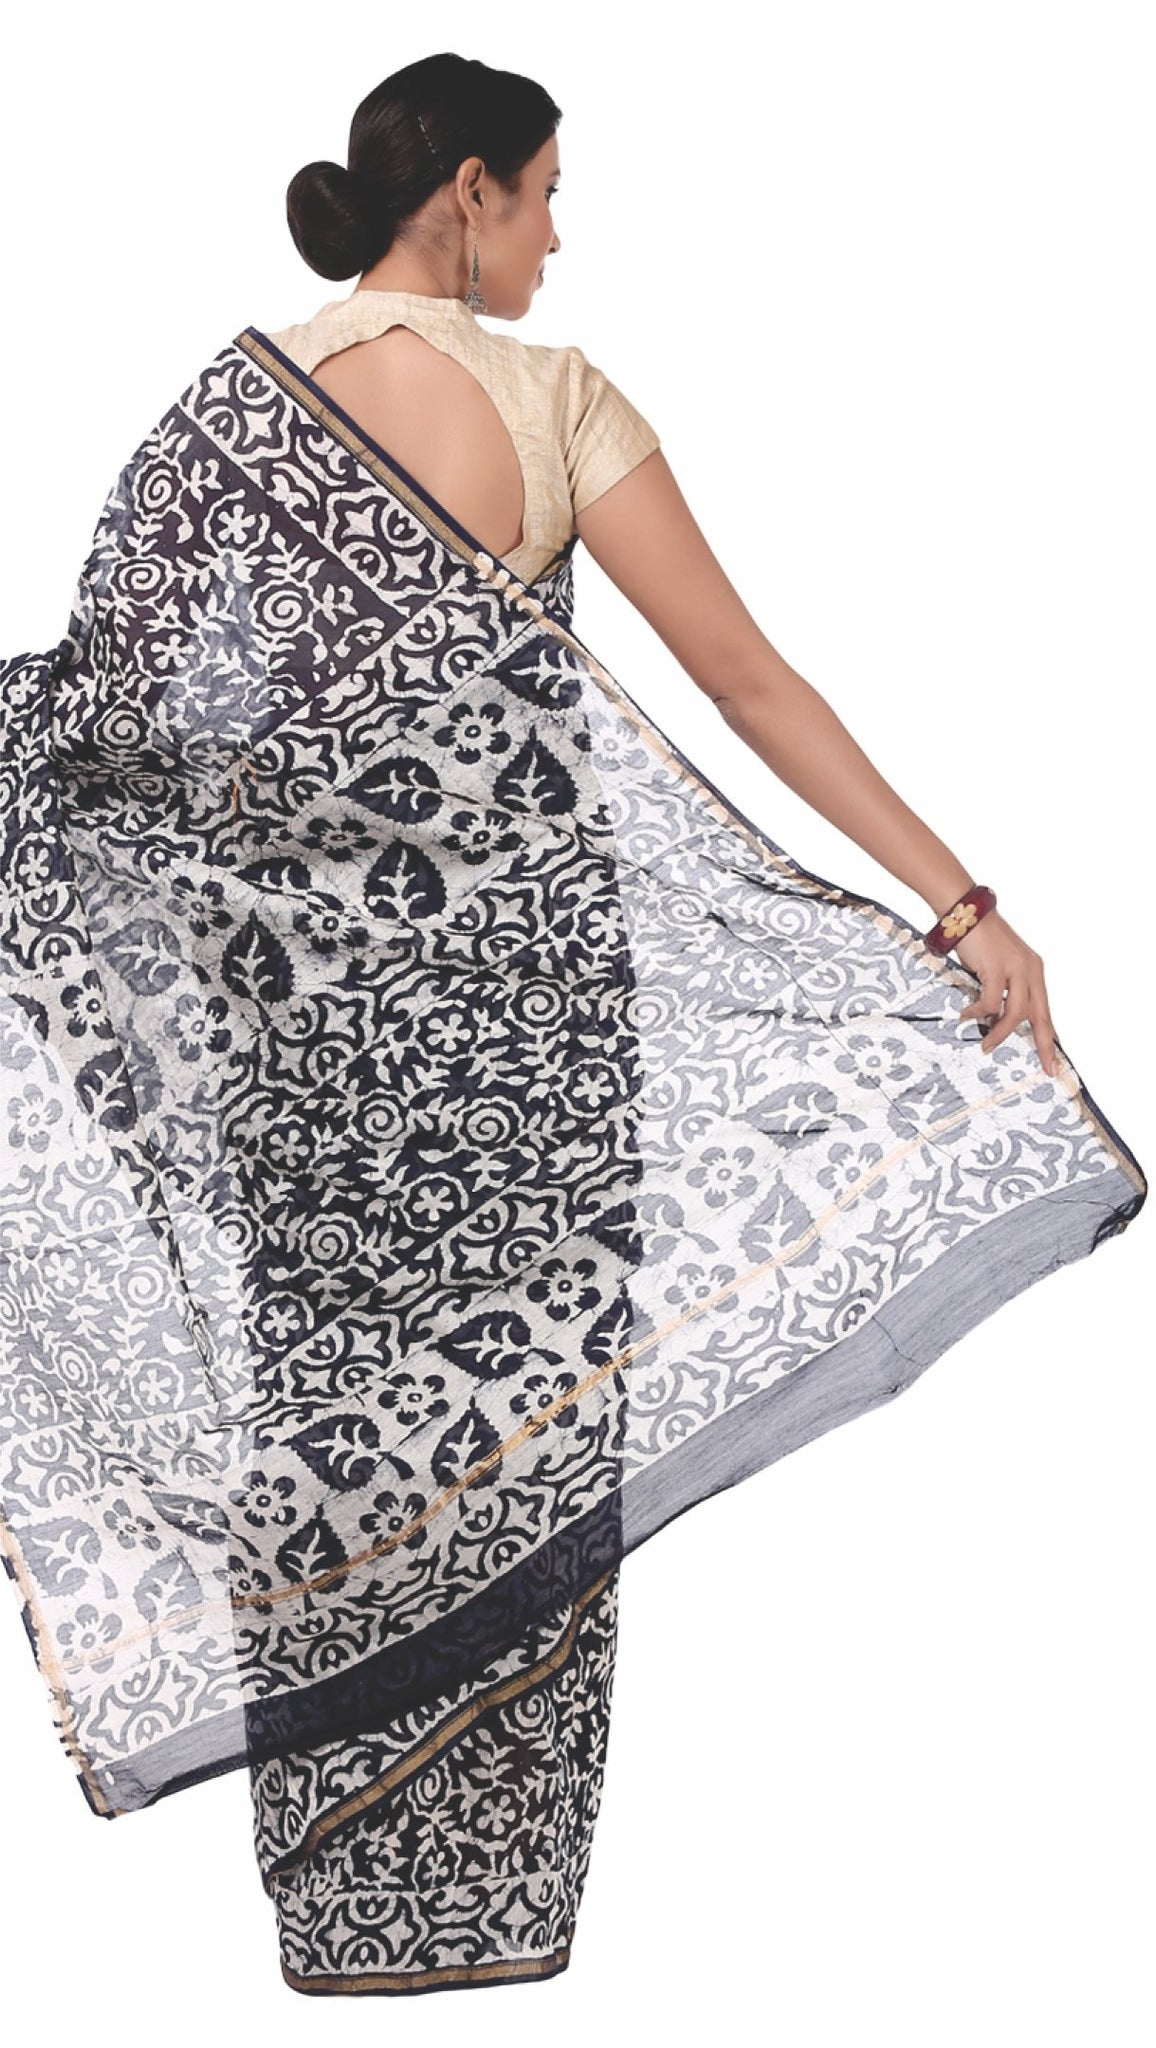 Black Chanderi Silk Batik Hand Block Print Handcrafted Saree-Saree-Kalakari India-RDSNSA0050-Batik, Chanderi, Geographical Indication, Hand Blocks, Hand Crafted, Heritage Prints, Sarees, Silk, Sustainable Fabrics-[Linen,Ethnic,wear,Fashionista,Handloom,Handicraft,Indigo,blockprint,block,print,Cotton,Chanderi,Blue, latest,classy,party,bollywood,trendy,summer,style,traditional,formal,elegant,unique,style,hand,block,print, dabu,booti,gift,present,glamorous,affordable,collectible,Sari,Saree,printed,